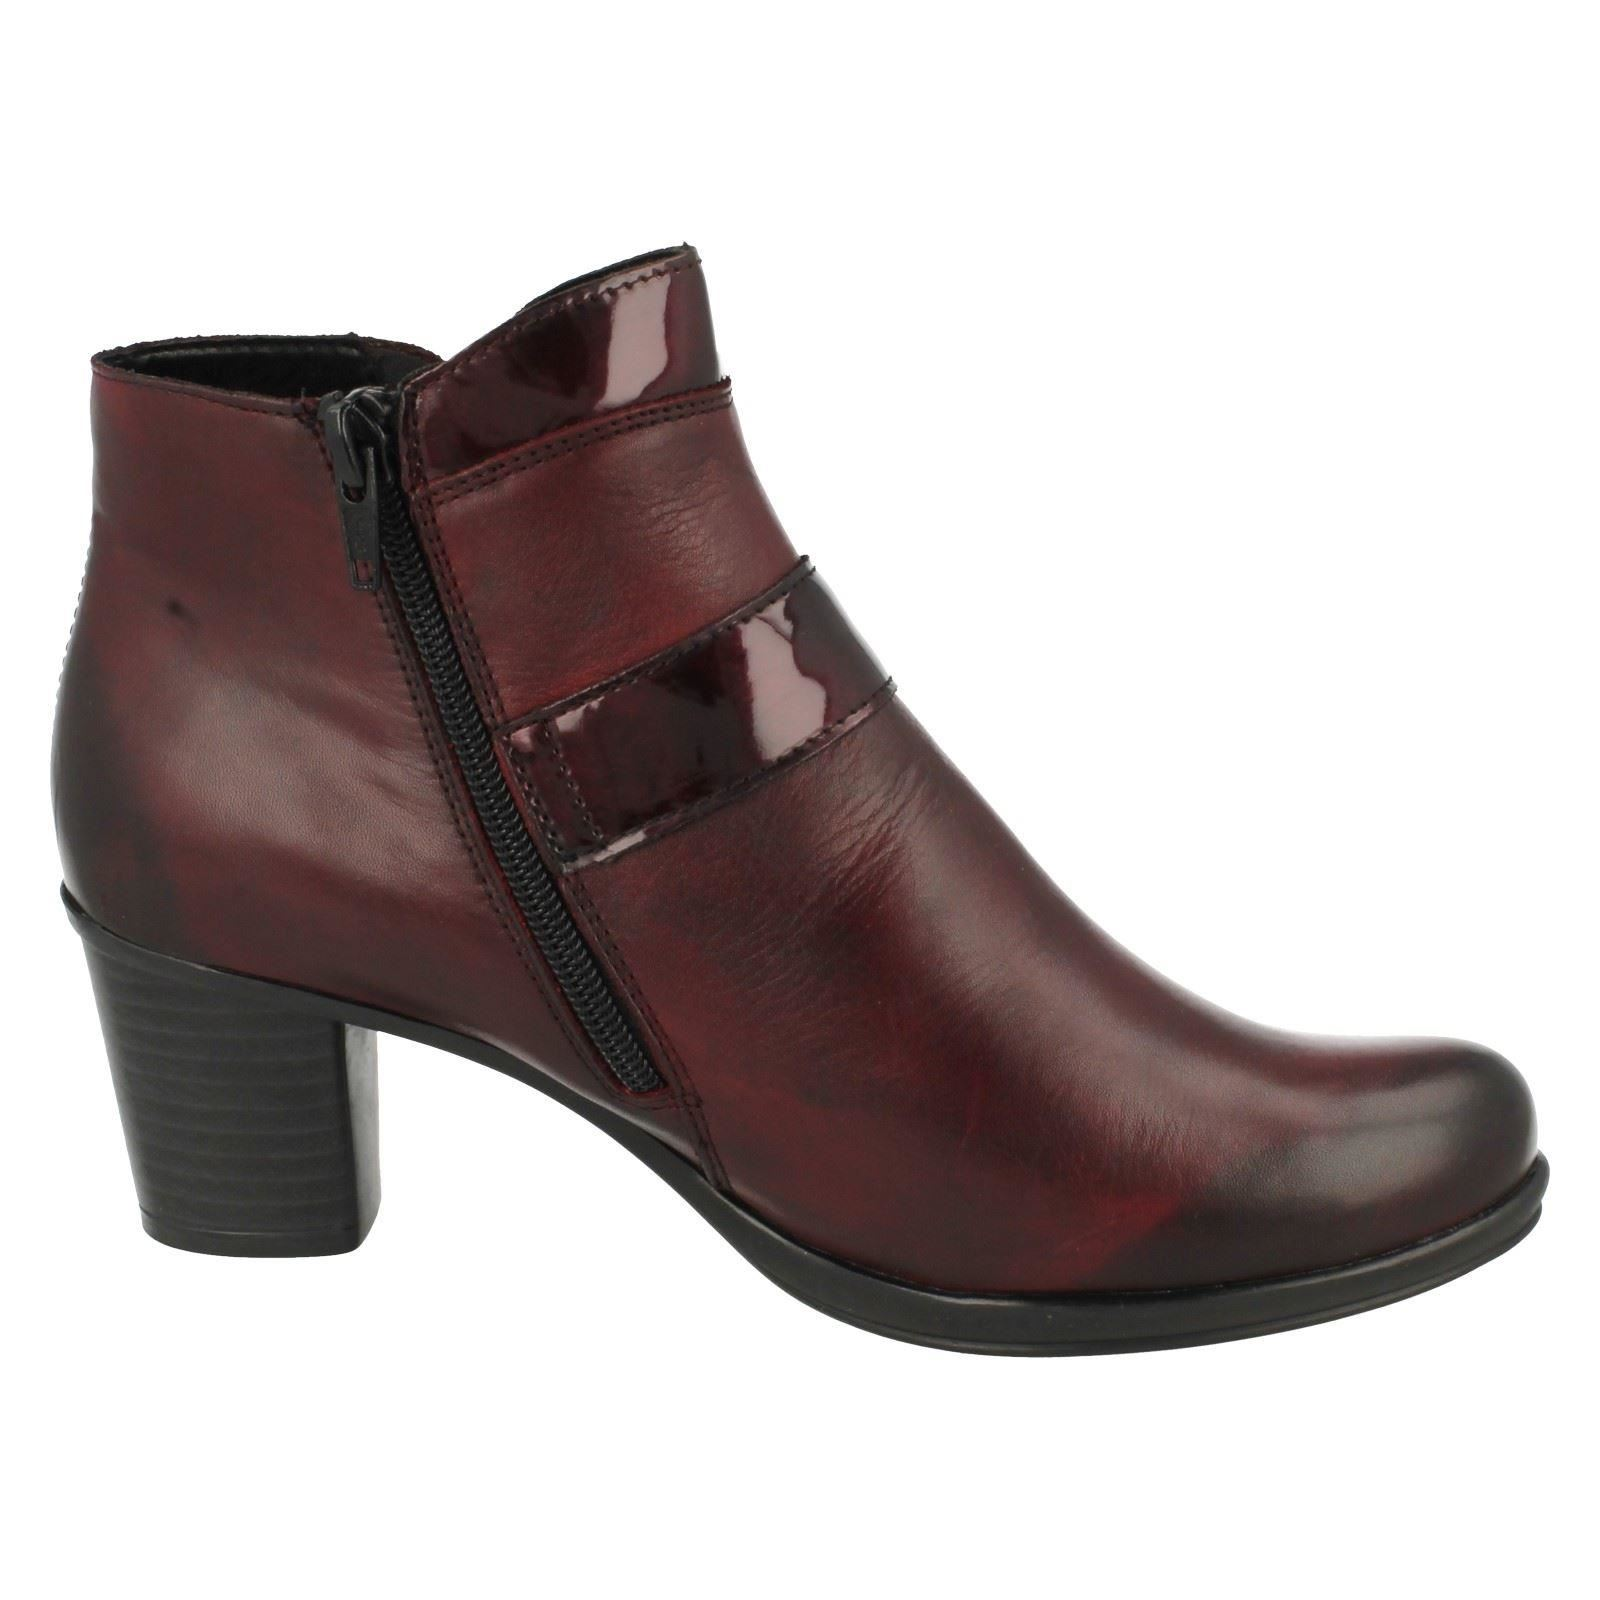 Ladies-Remonte-Warmlined-Leather-Low-Heel-Ankle-Boots-039-R1571-039